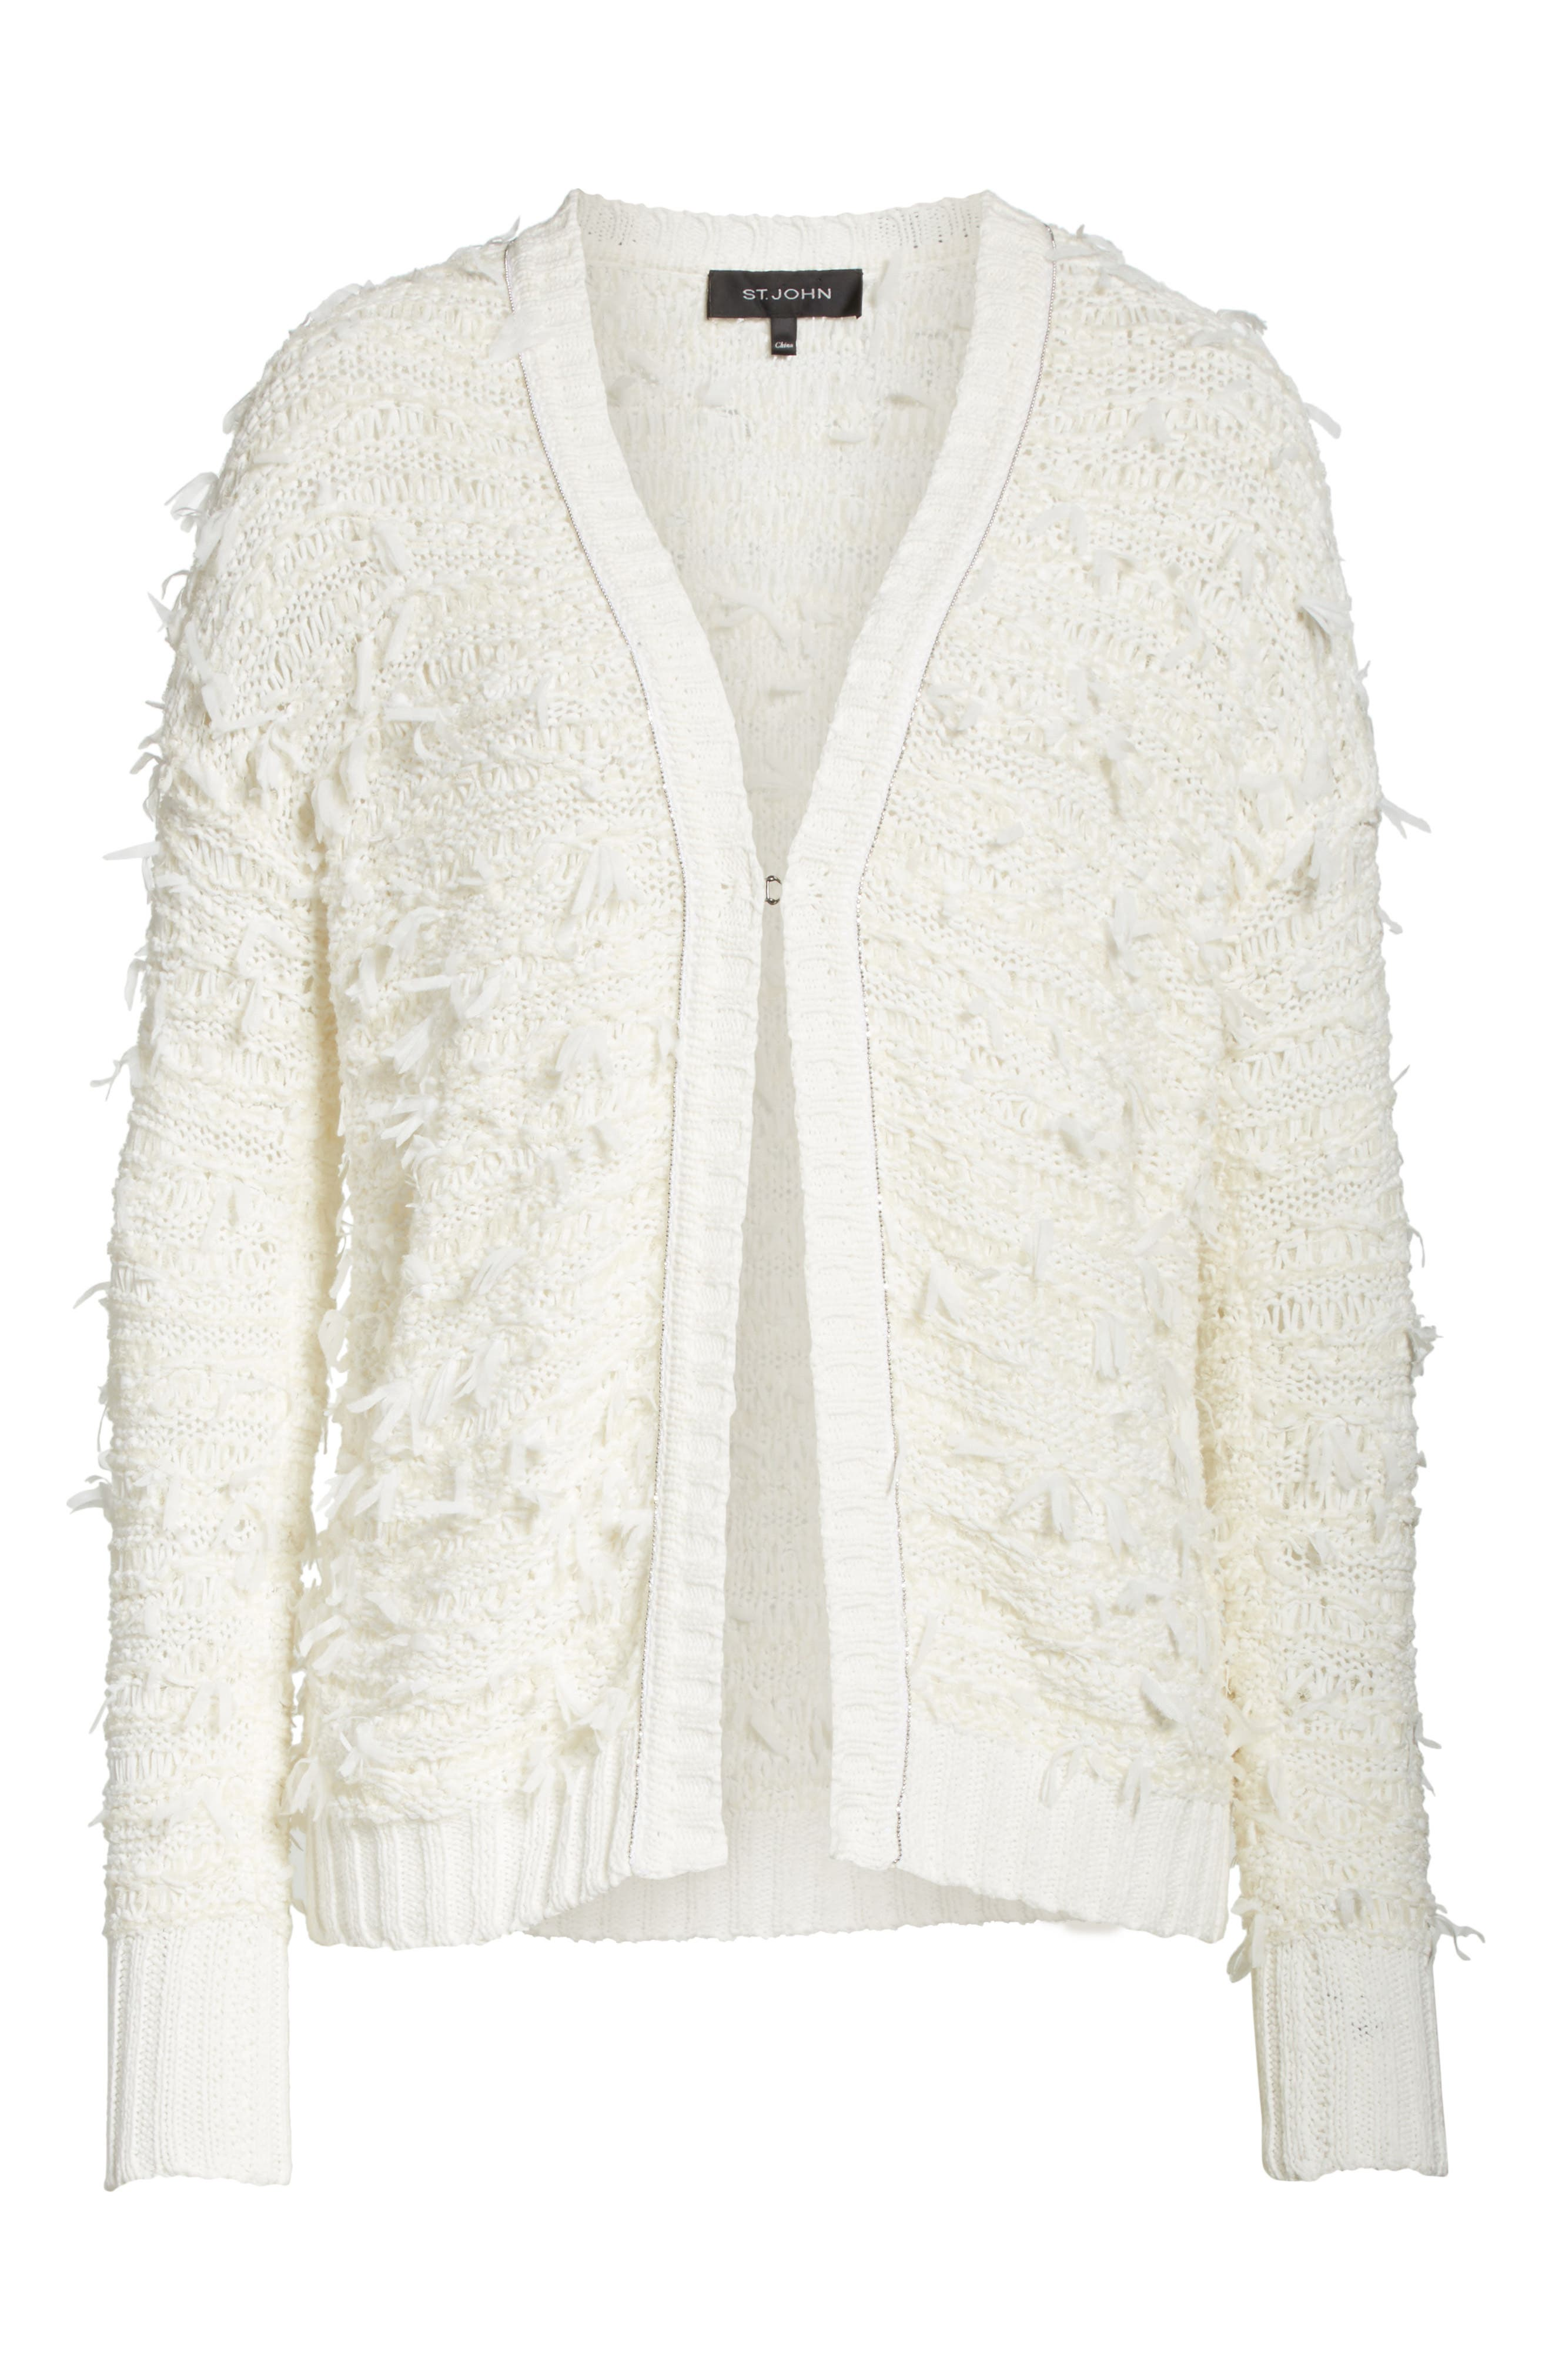 Tufted Knit Cardigan,                             Alternate thumbnail 6, color,                             900